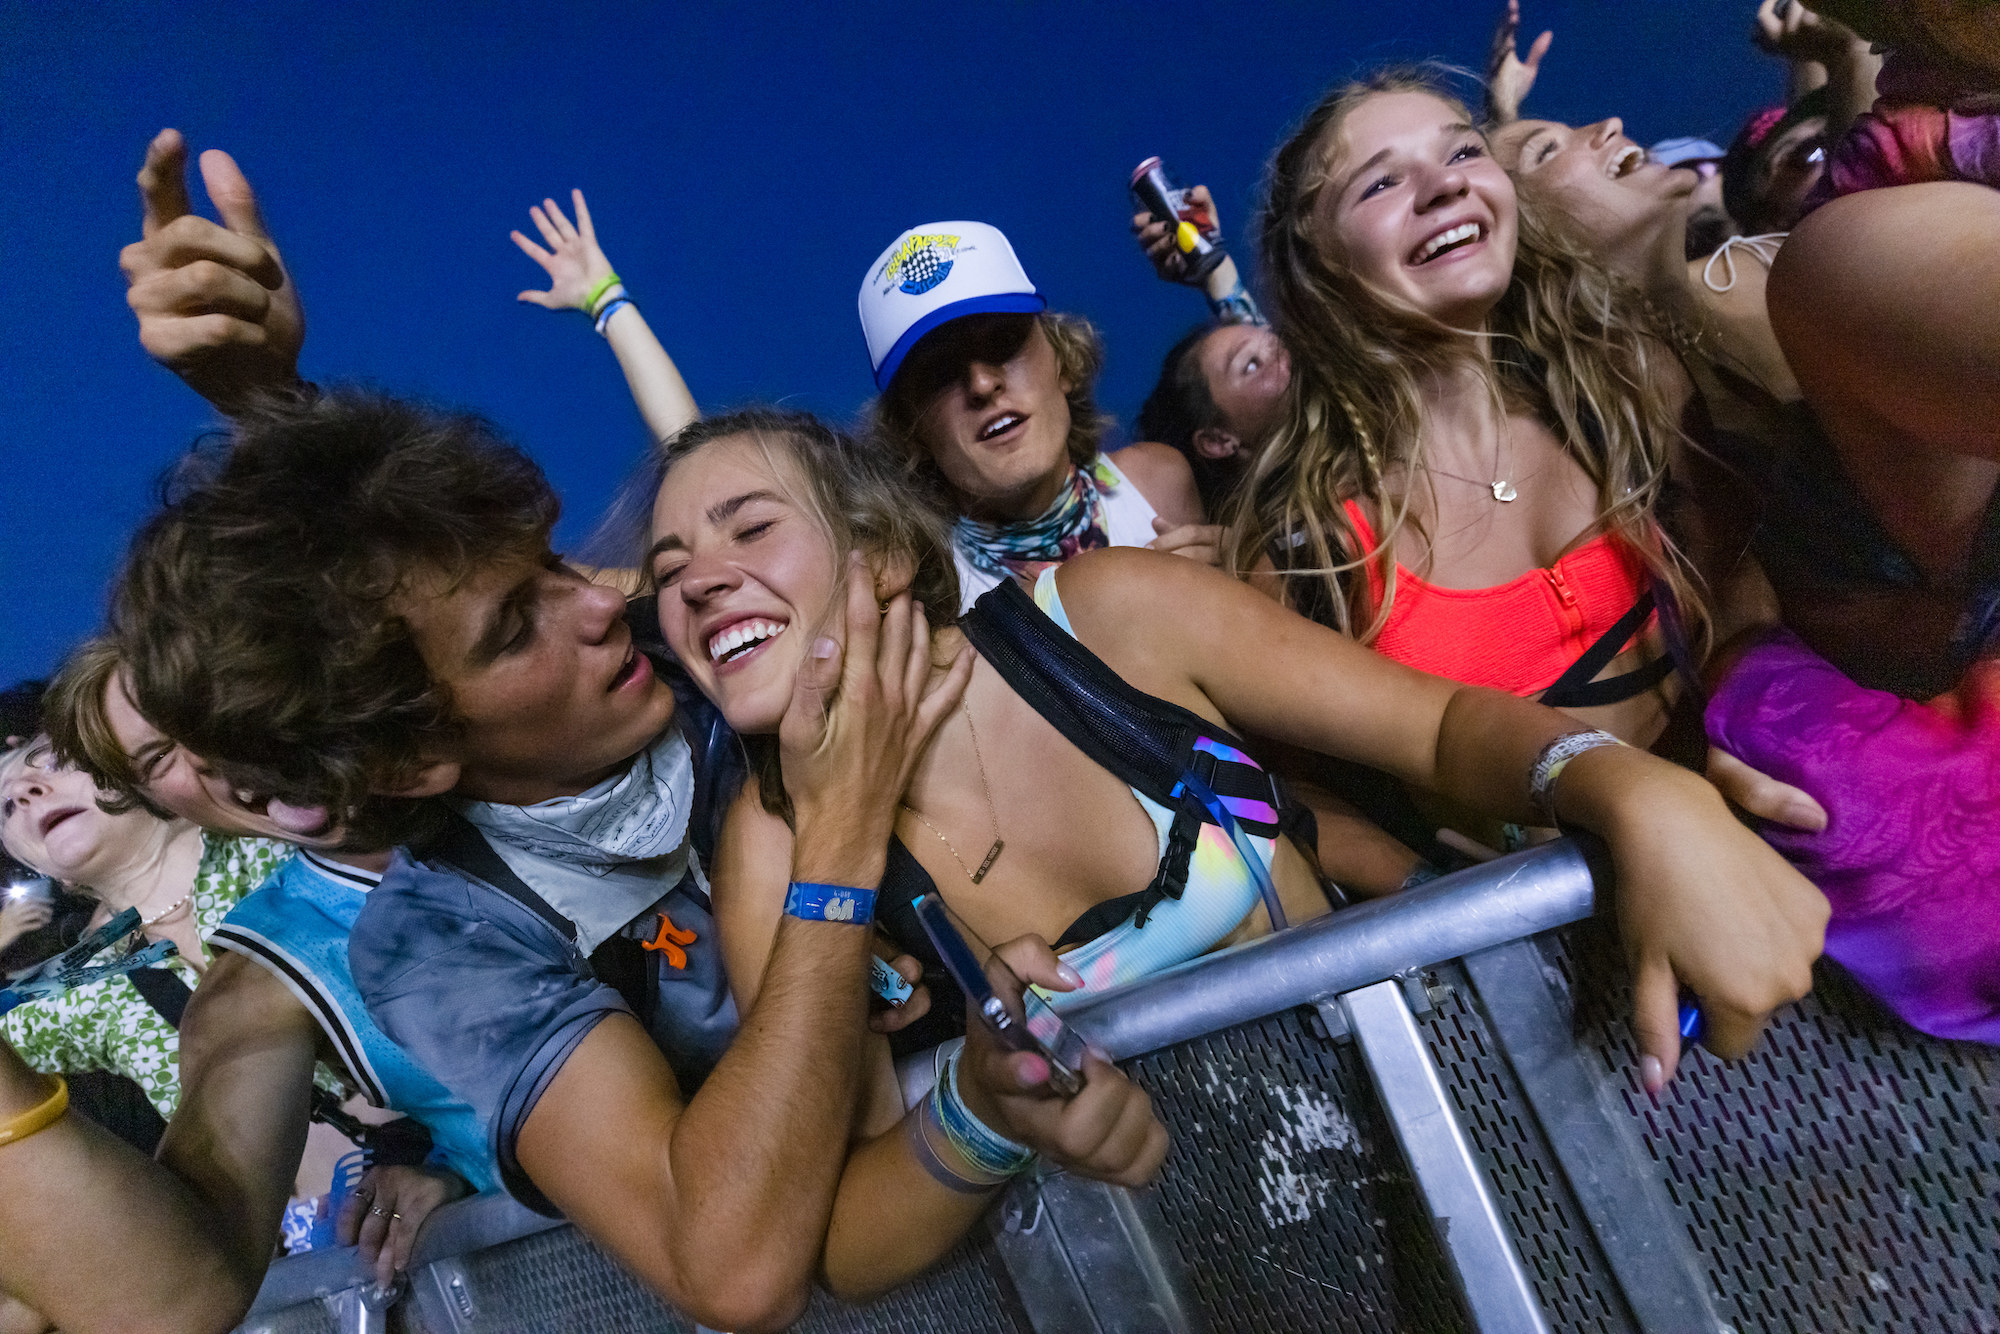 A male attendee motions to kiss a female attendee at Lollapalooza music festival.